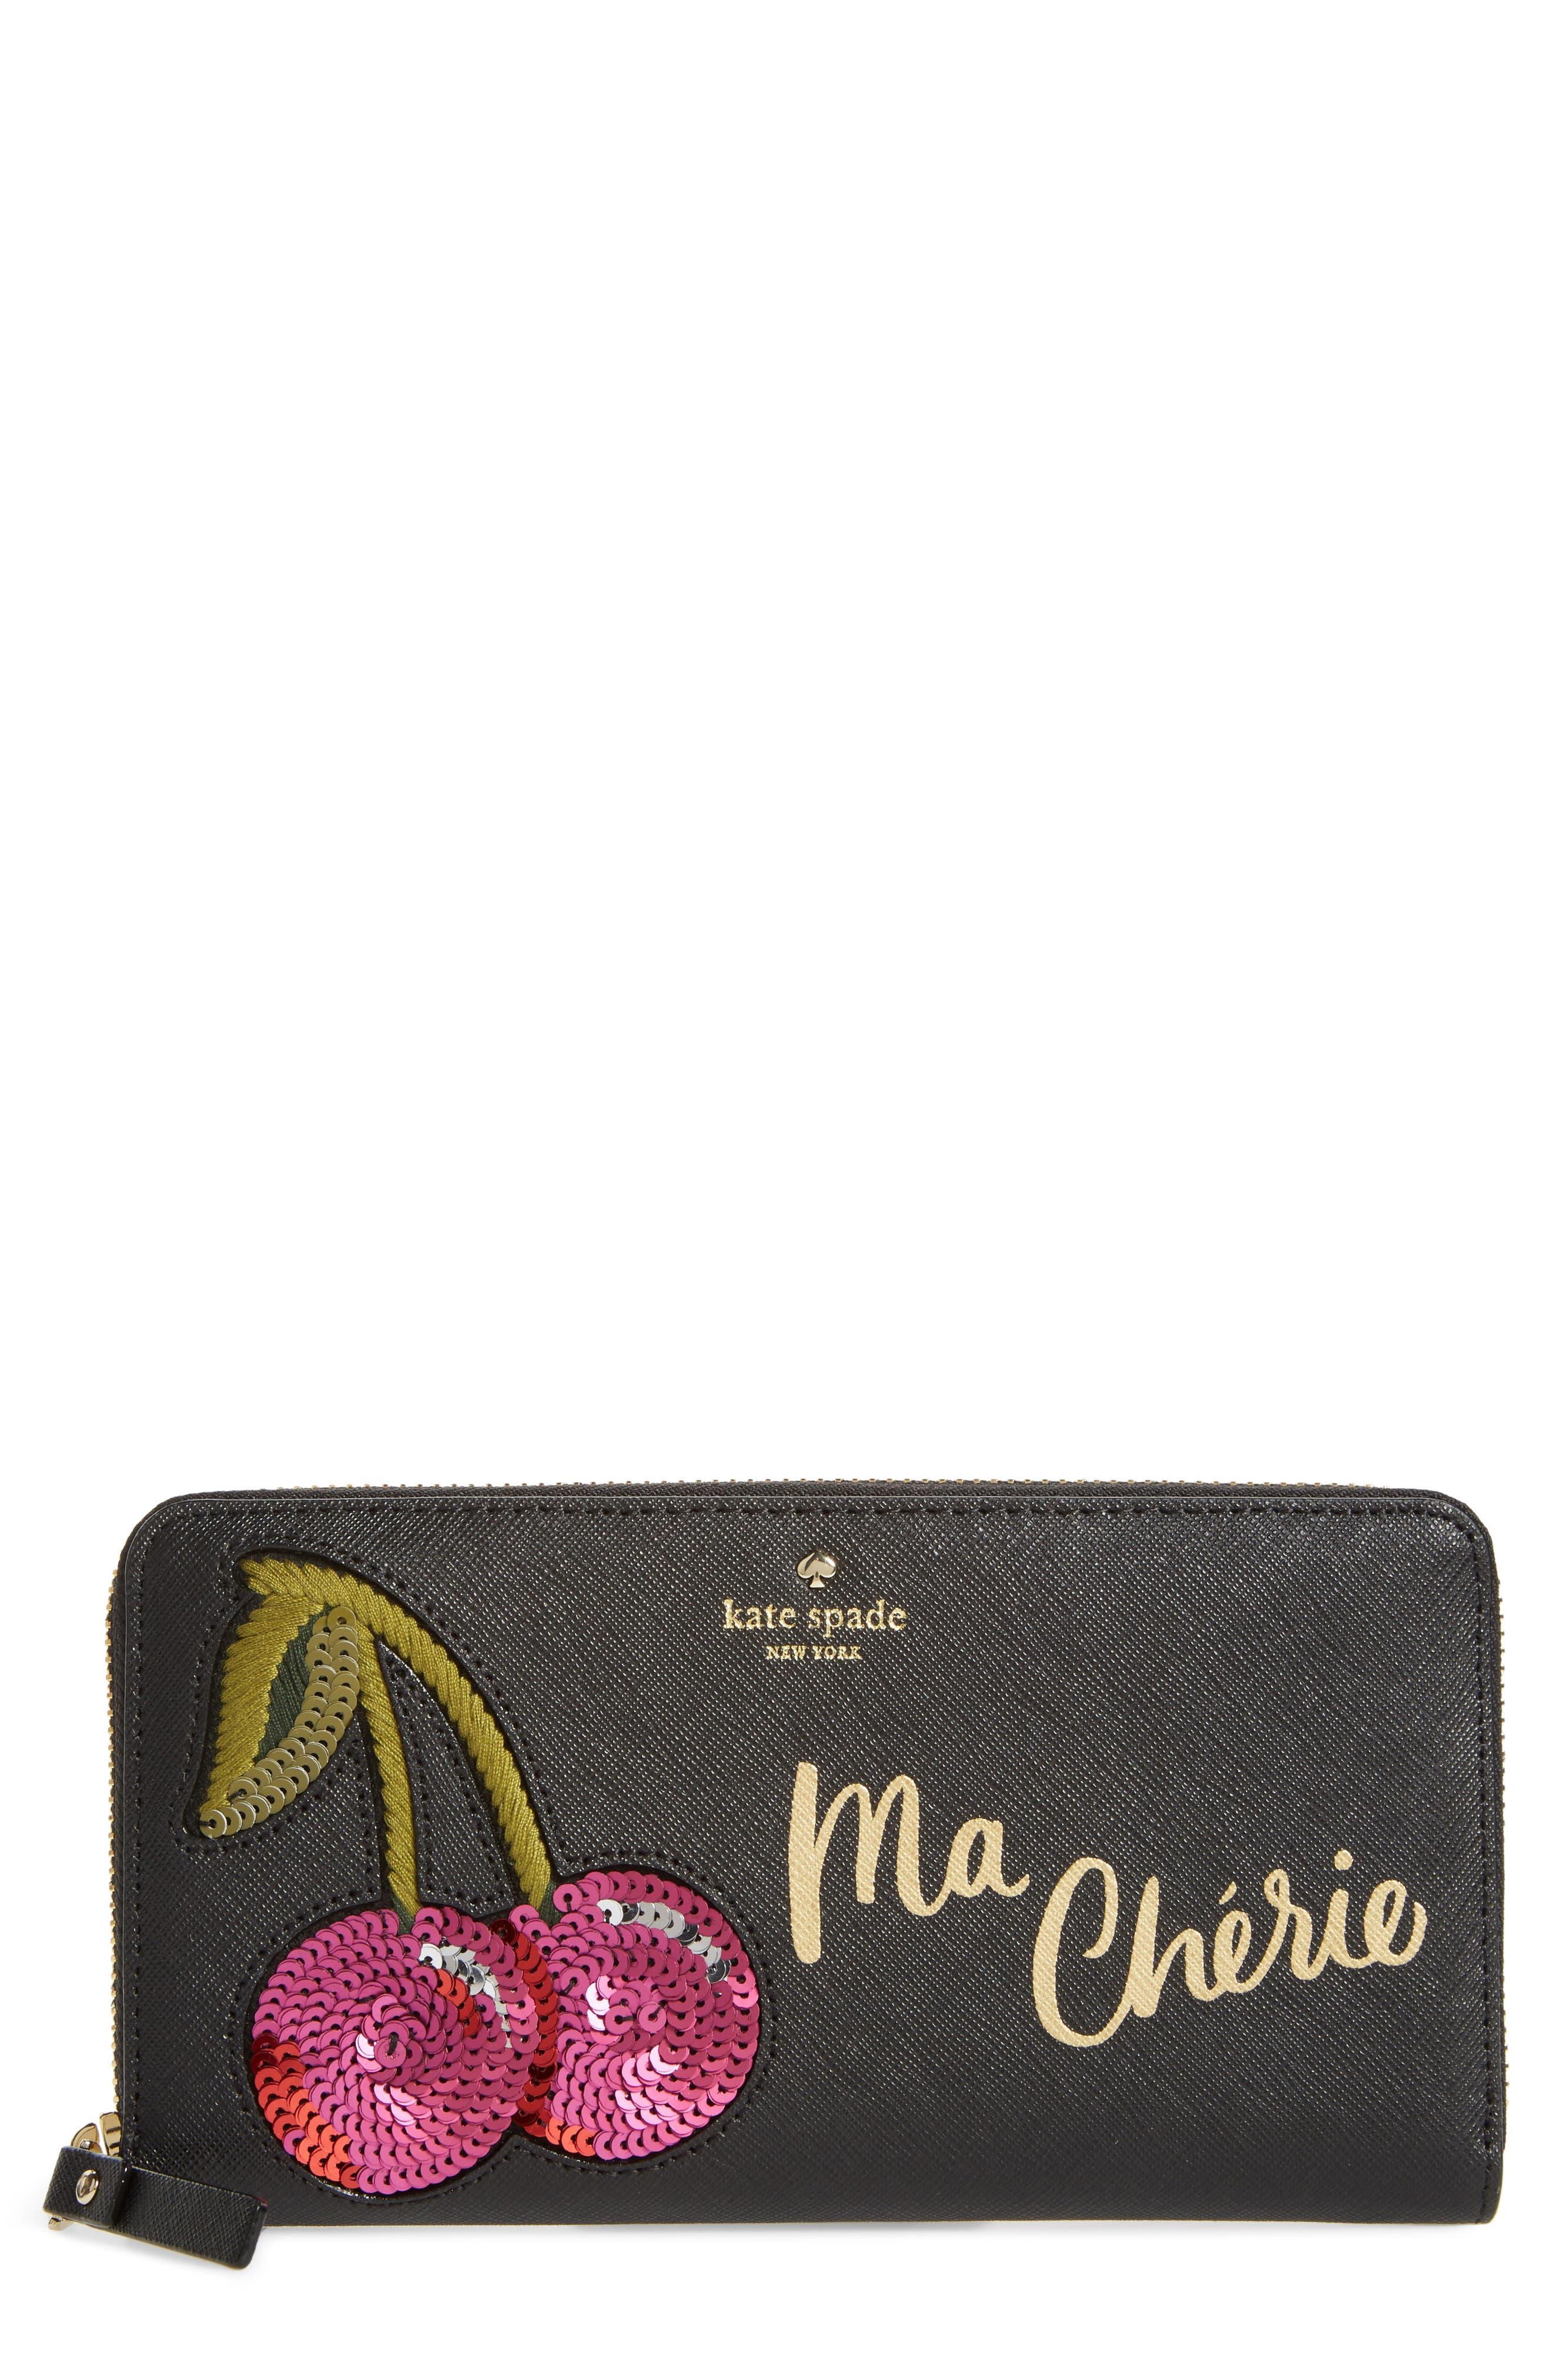 Alternate Image 1 Selected - kate spade new york ma chérie - lacey appliqué leather wallet